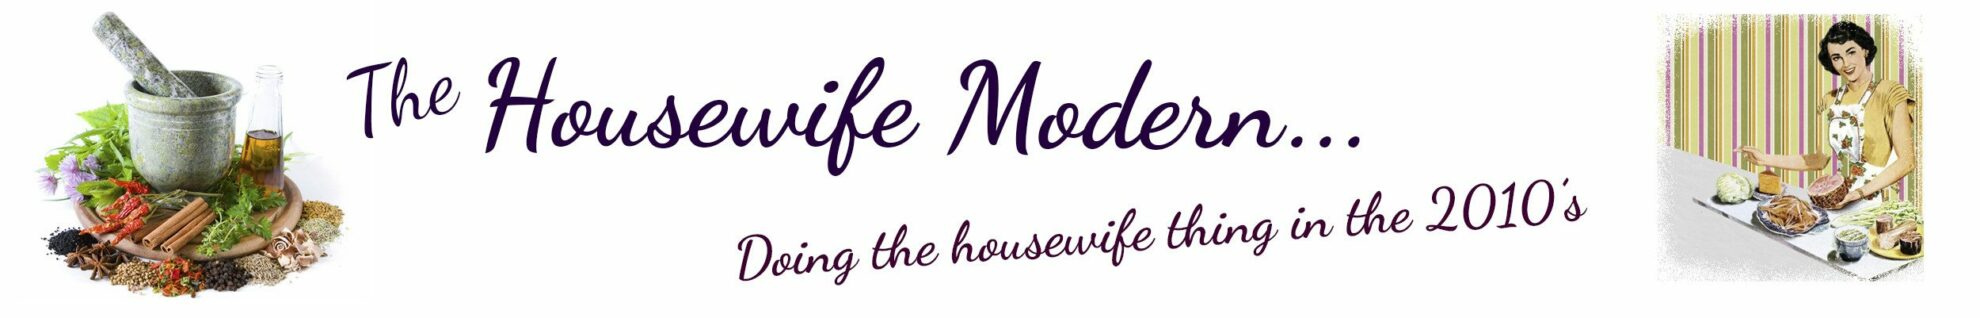 The Housewife Modern